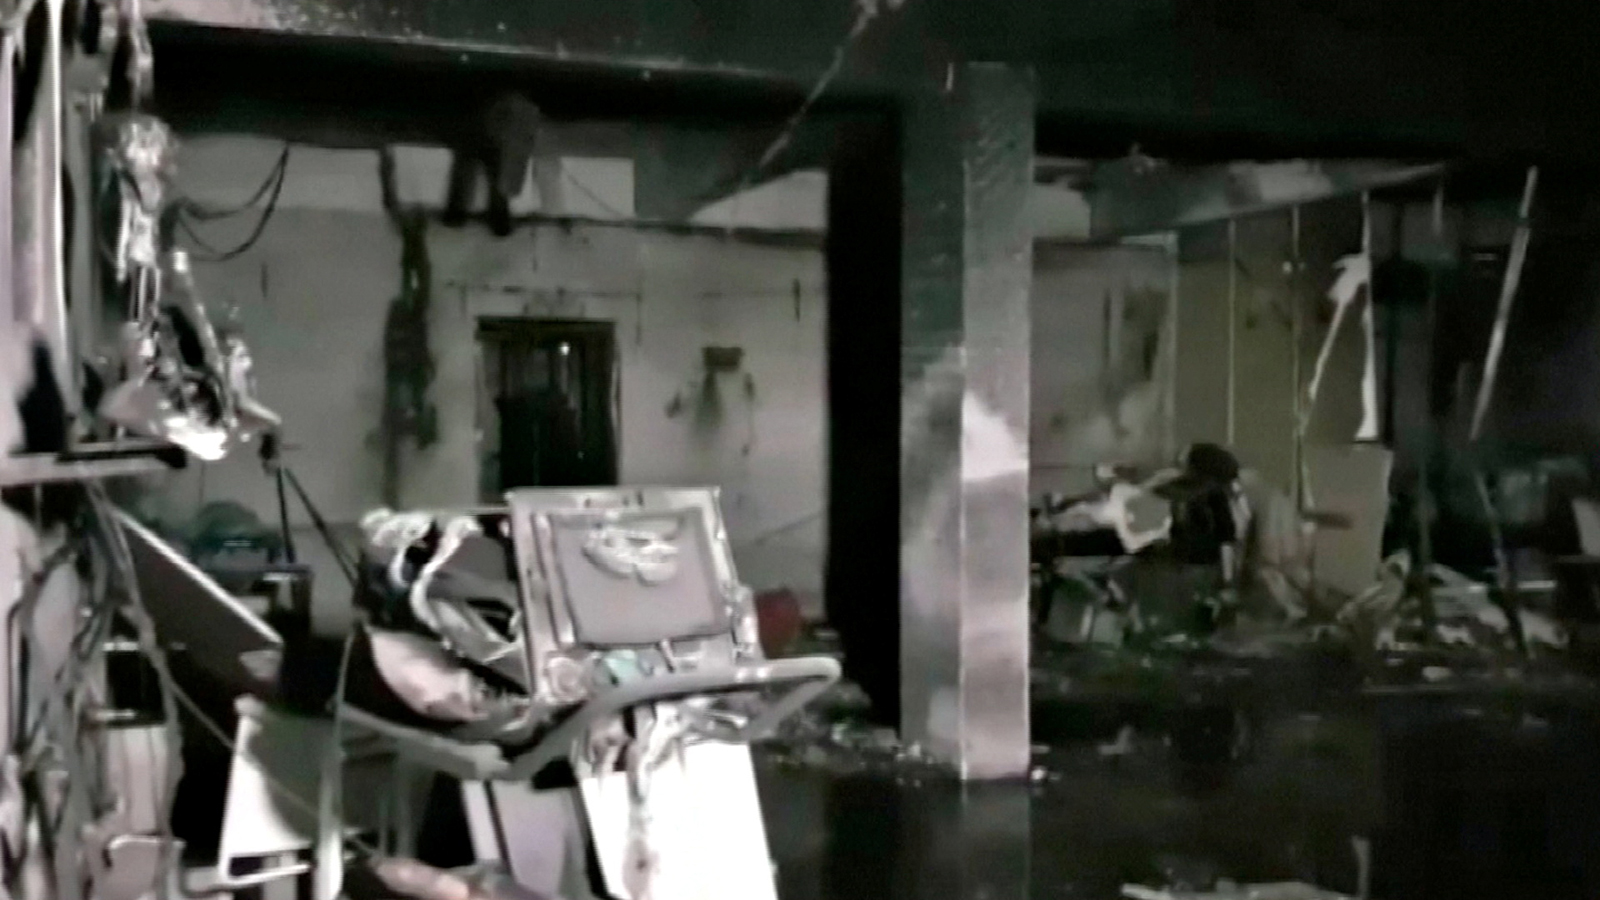 Damaged equipment and furniture are seen in the burnt interior of a hospital treating coronavirus patients, after a deadly fire, in India's western Gujarat state, May 1, in this still image obtained from video.